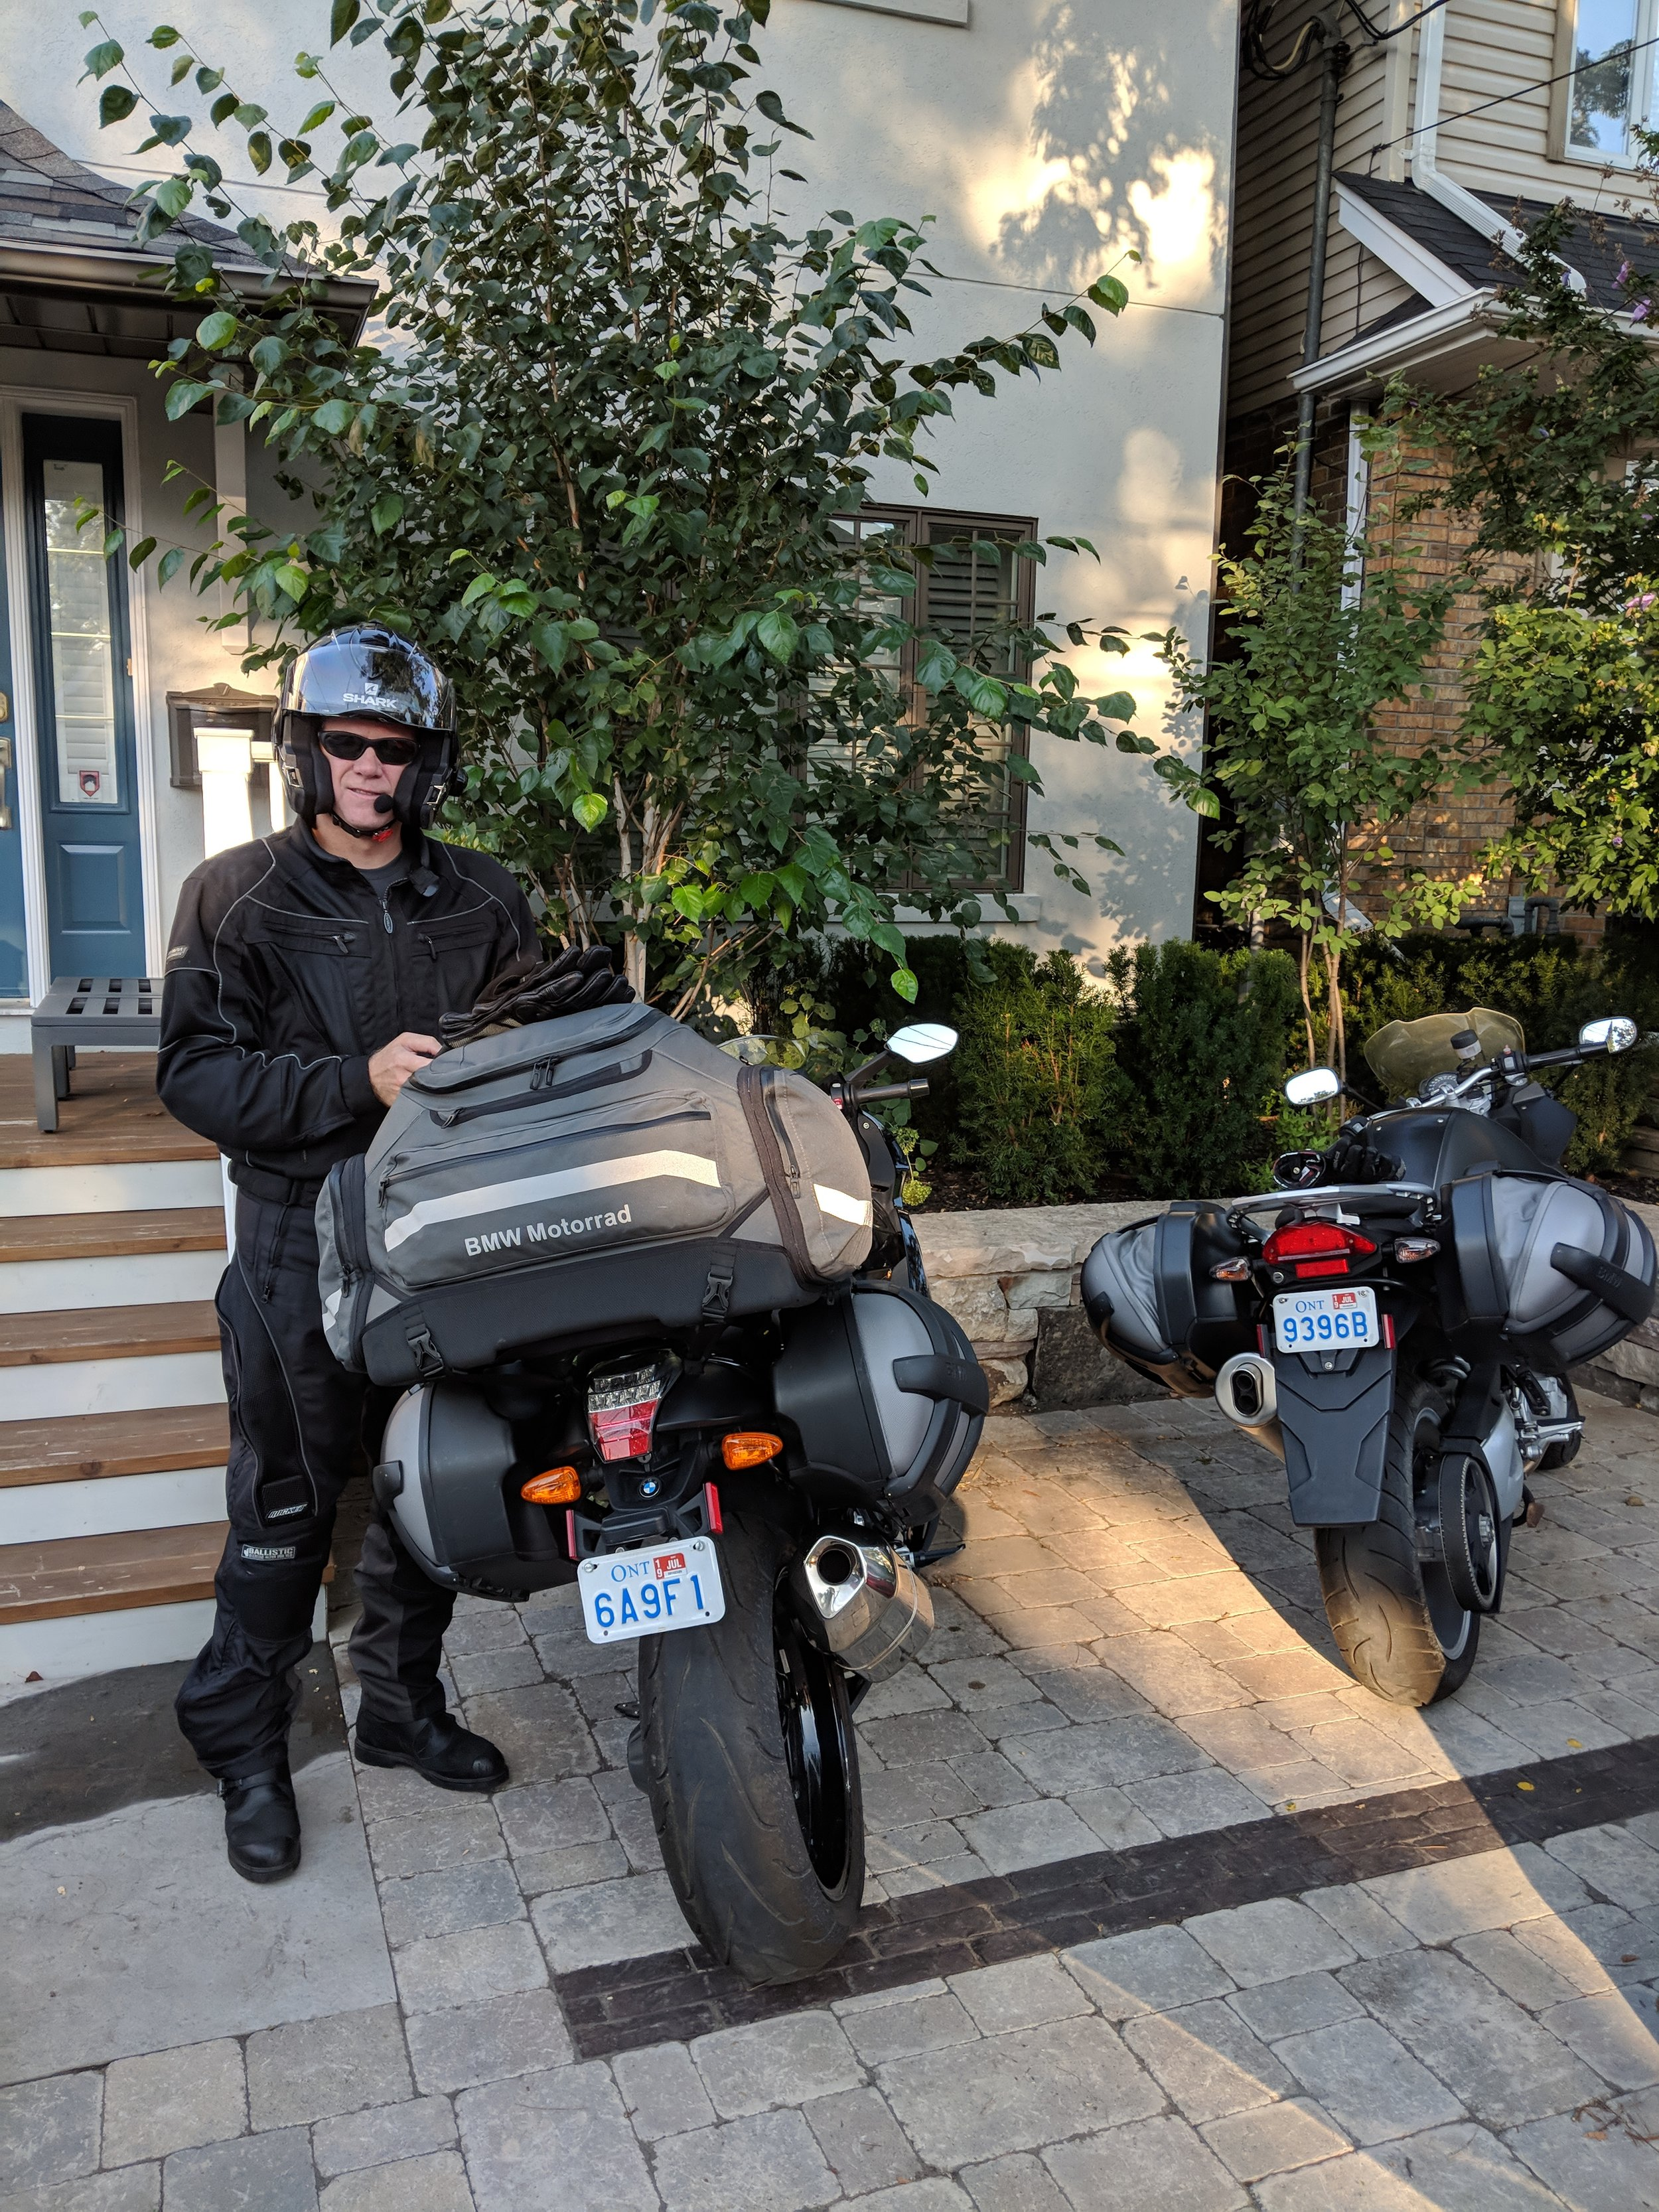 Andrew has most of the luggage on his bike. What a man!